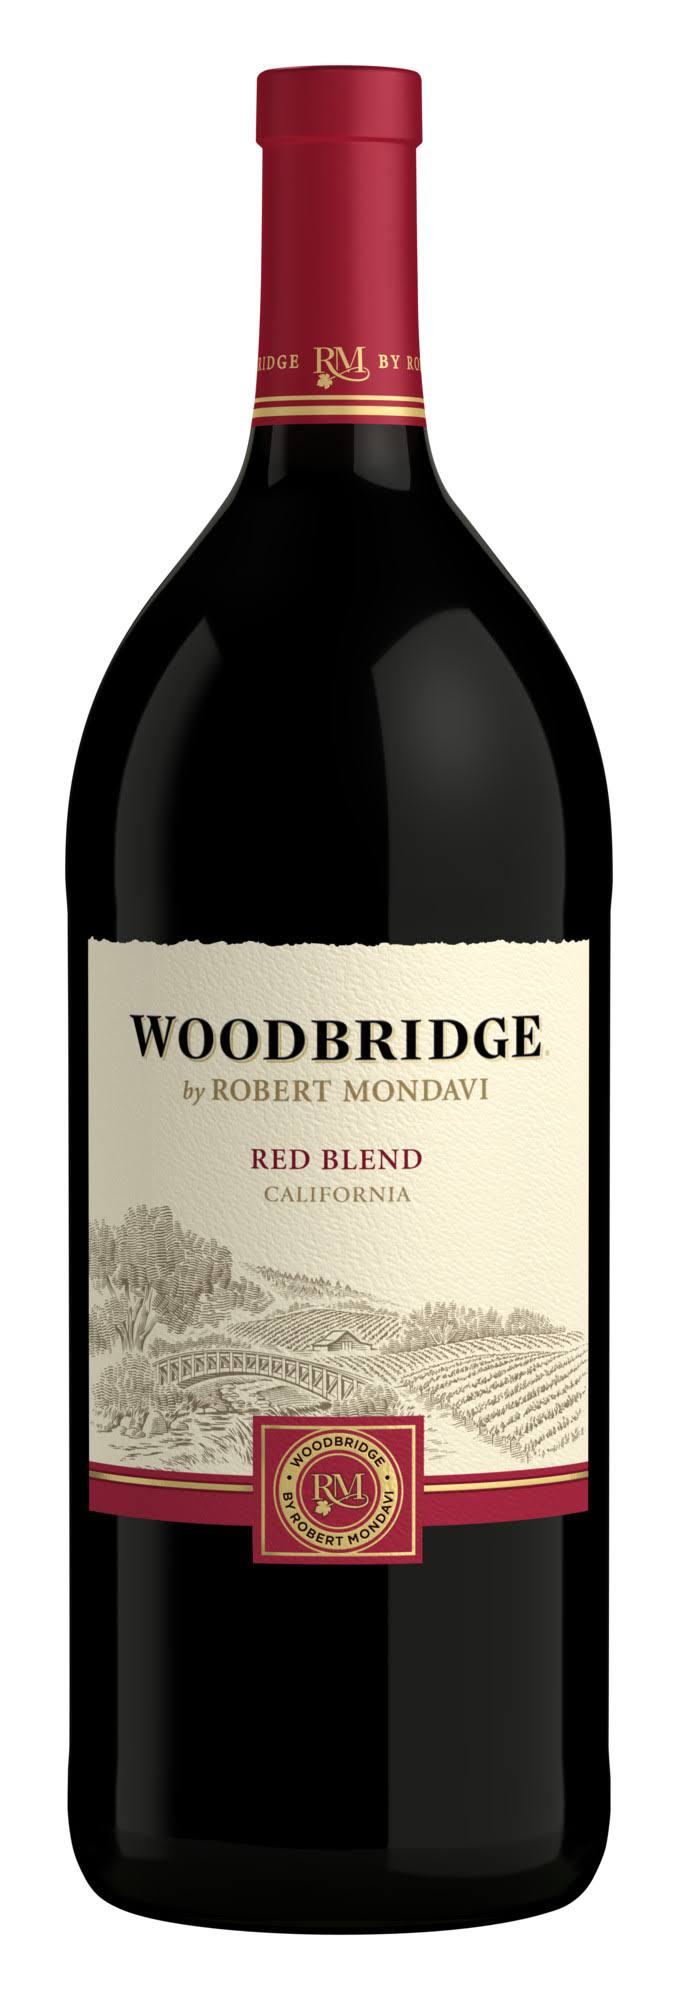 Woodbridge Red Blend, California, 2015 - 1.5 l